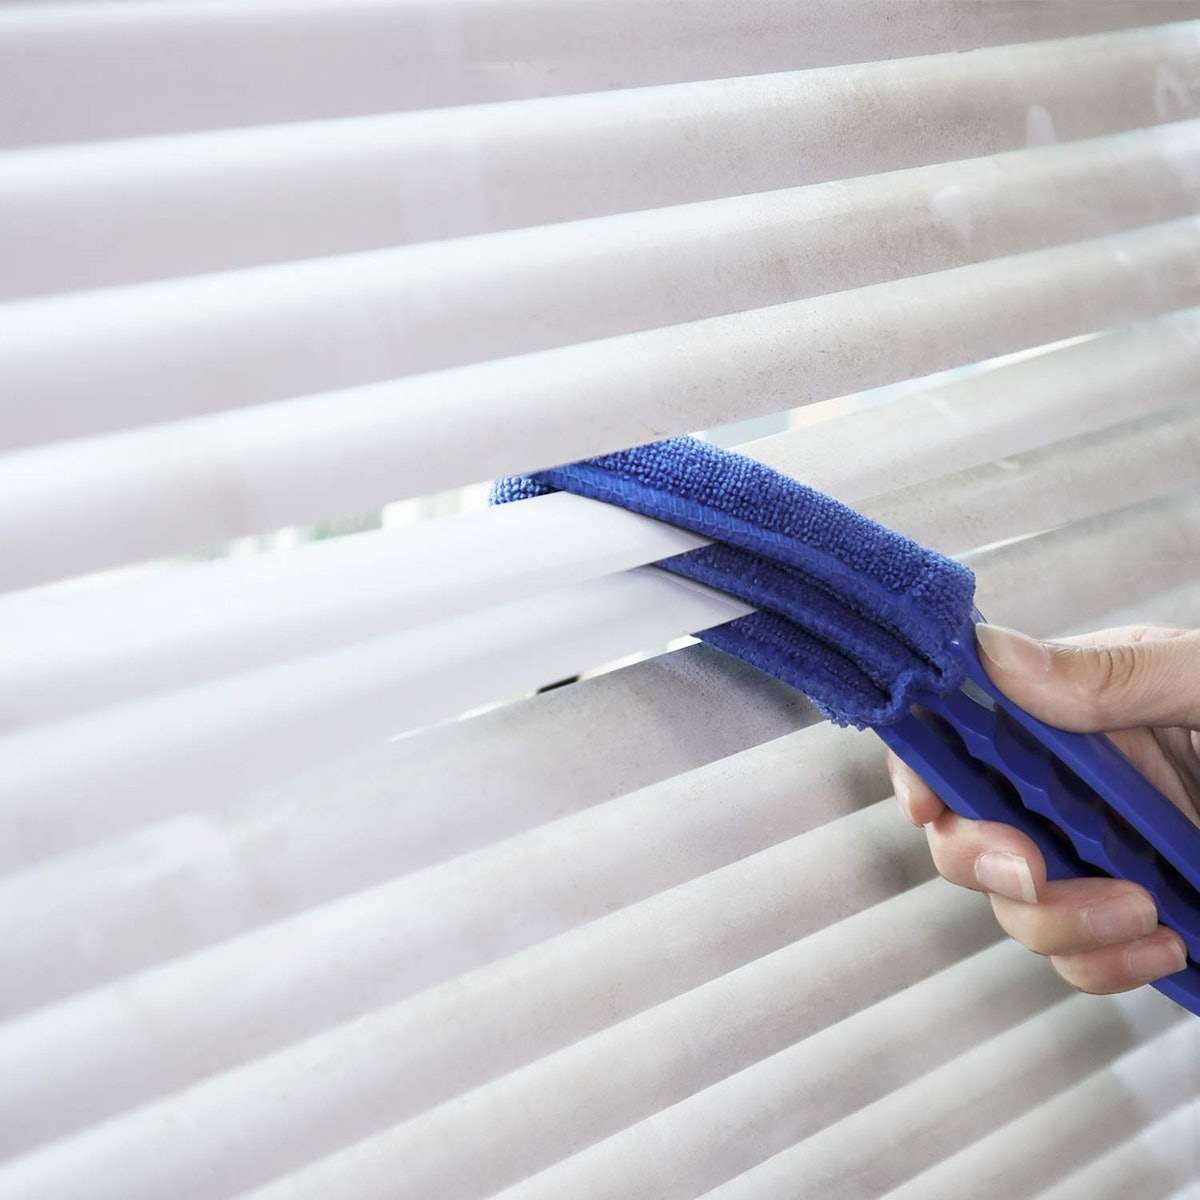 HIWARE Window Blind Cleaner